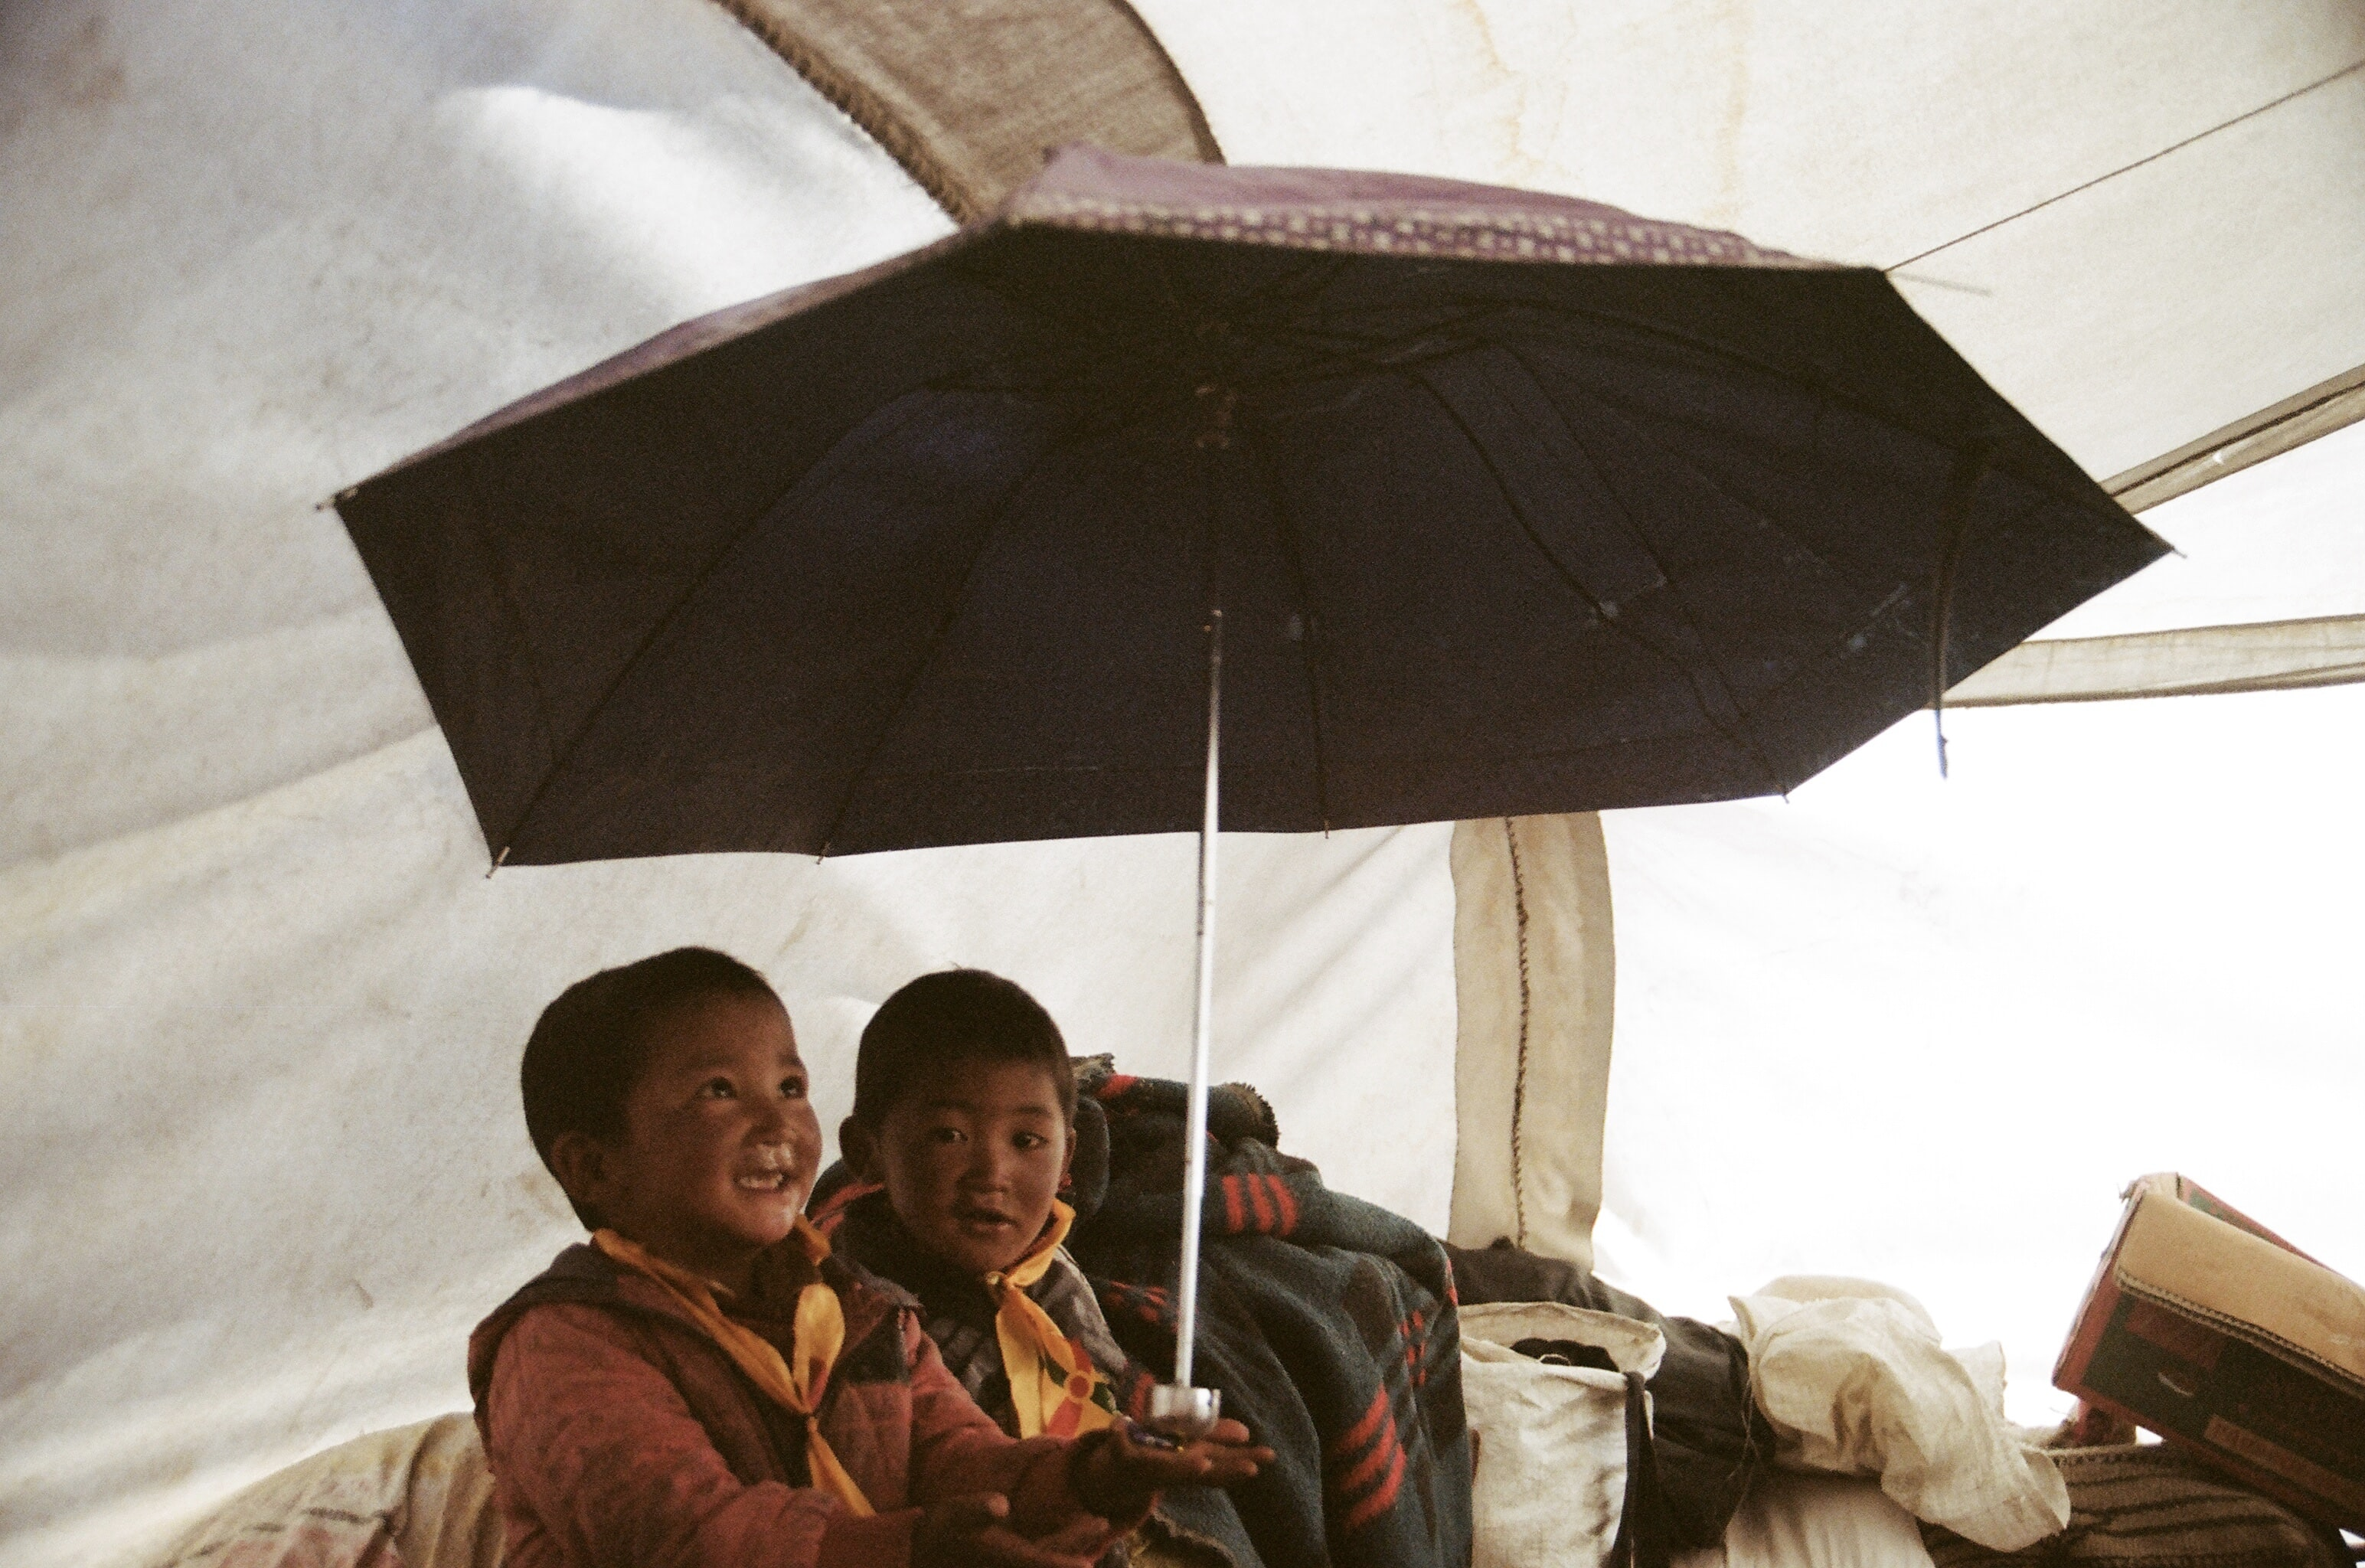 boy holding umbrella in tent